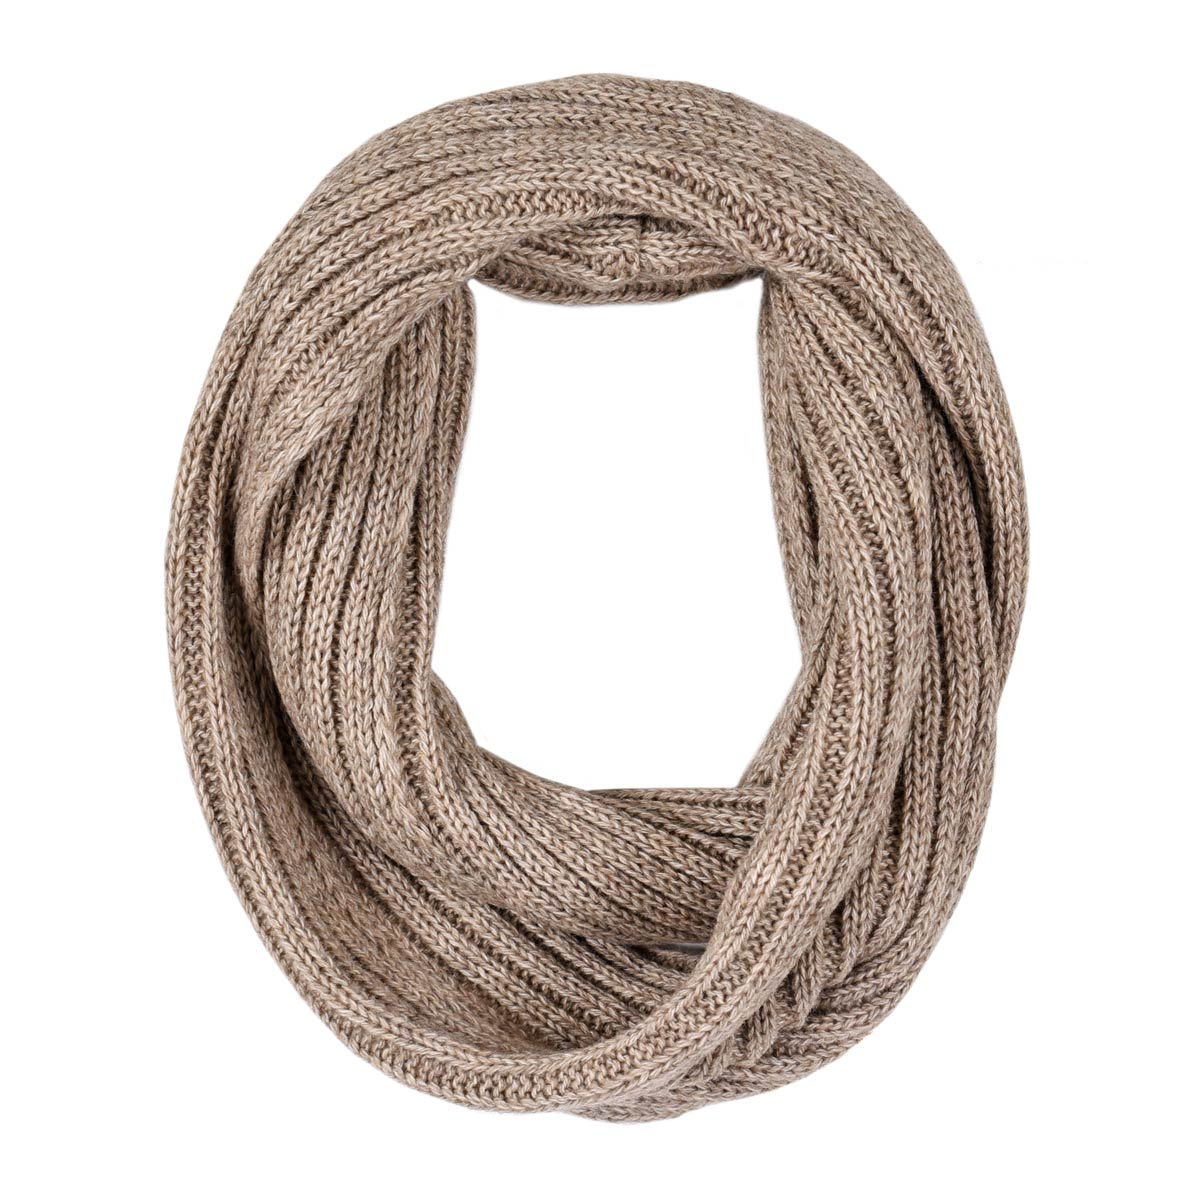 AT-05863_F12-1--_Snood-cheminee-taupe